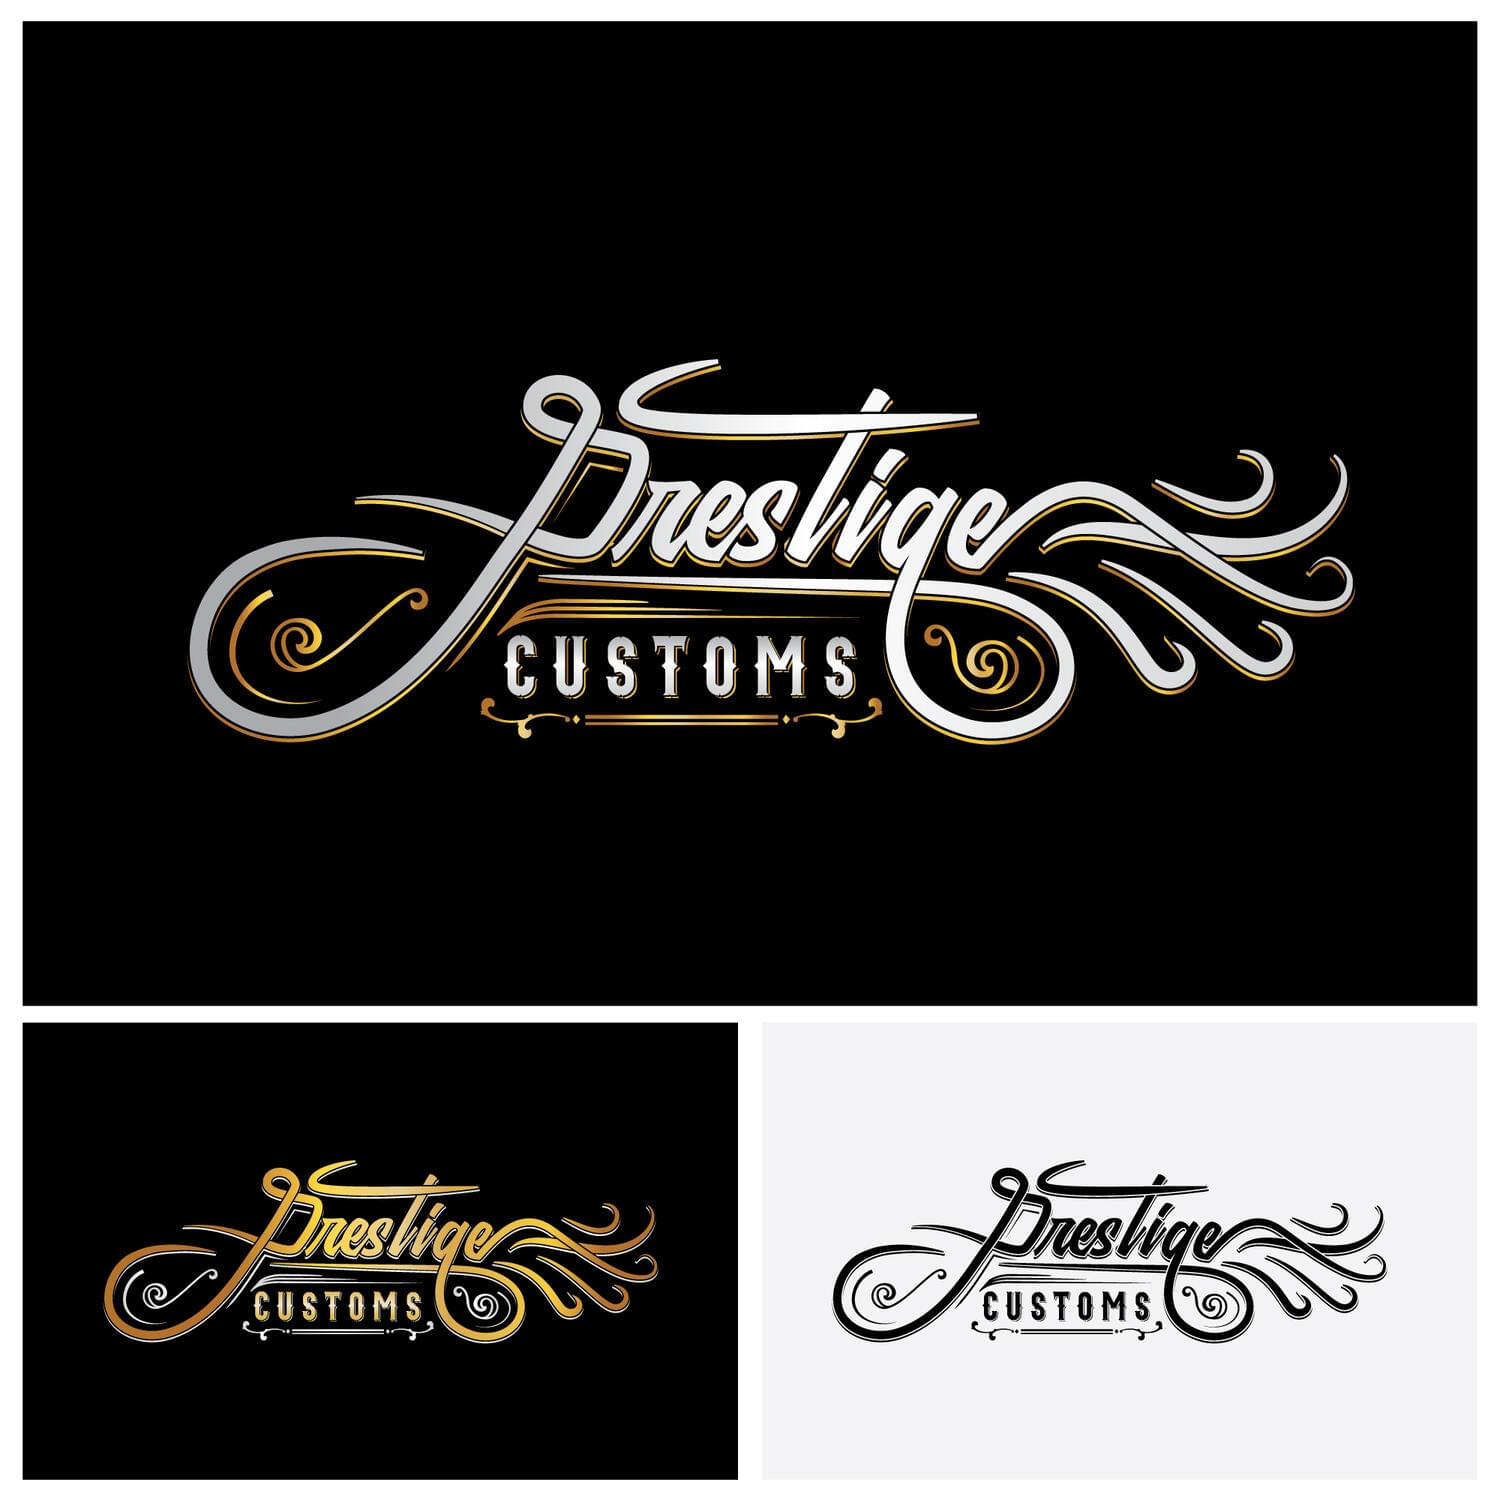 Handcrafted Logo Design by mjcreative - 118594